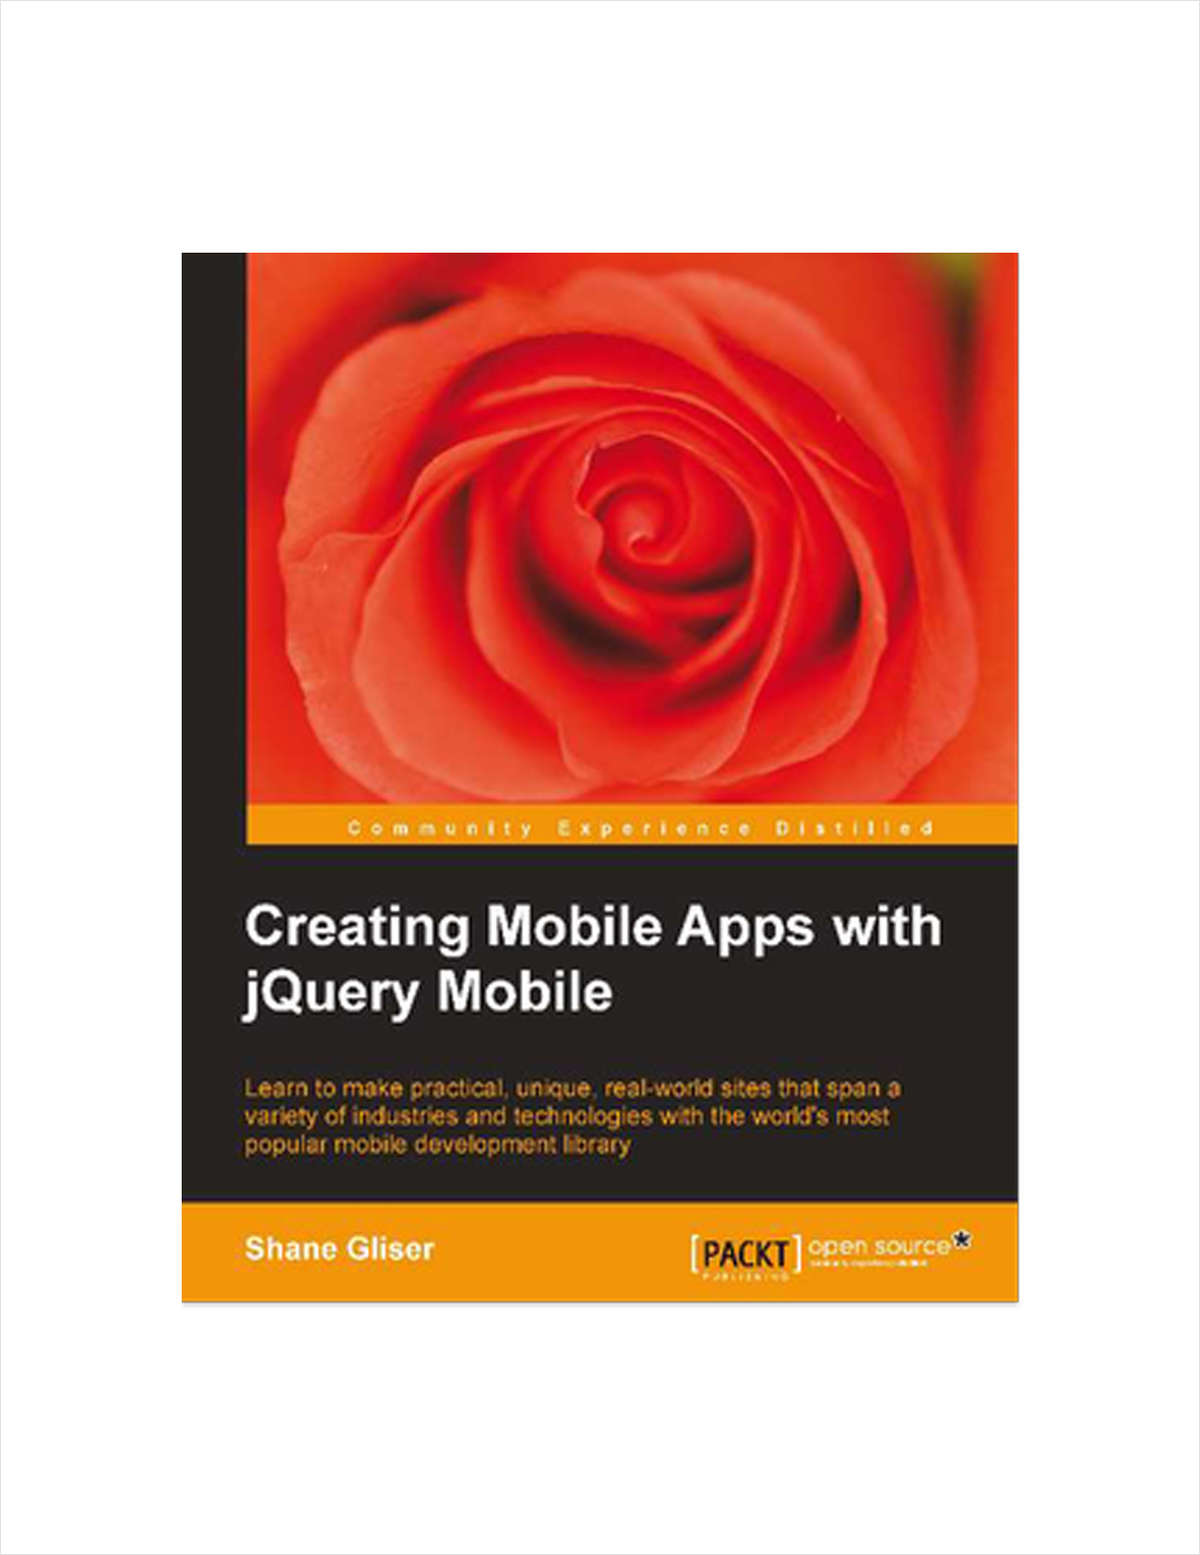 Creating Mobile Apps with jQuery Mobile--Free 30 Page Excerpt